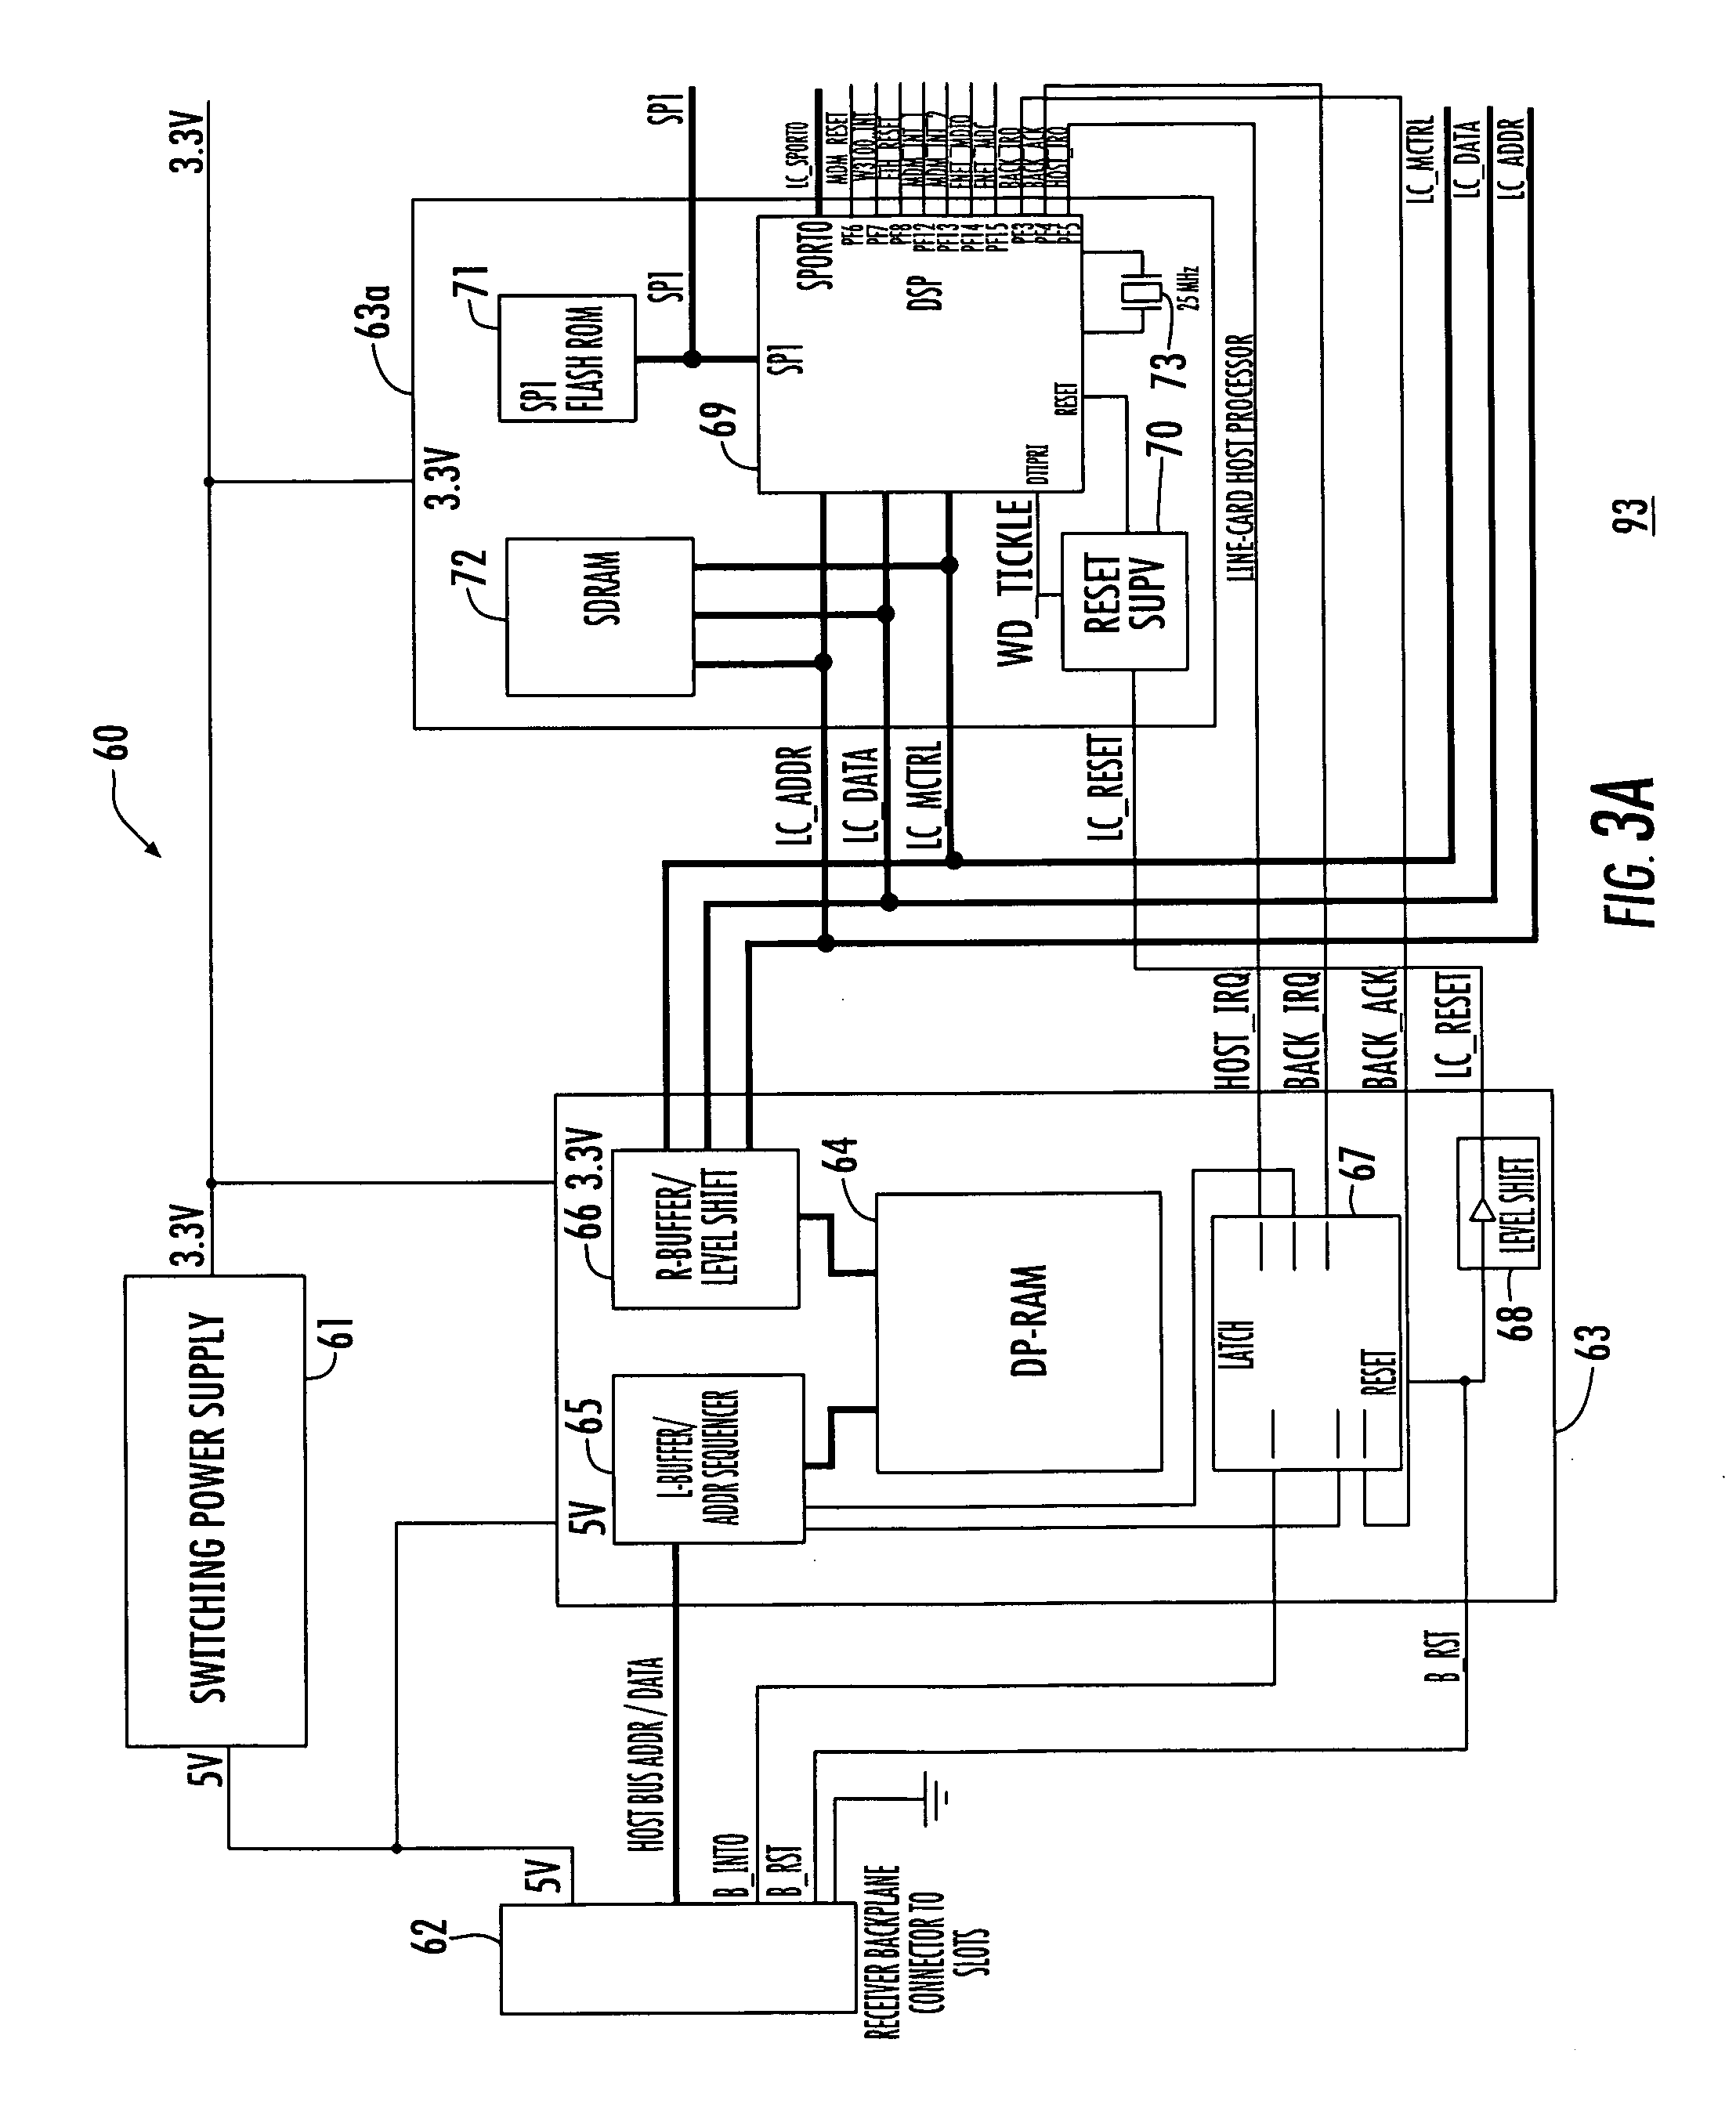 US20090058630A1 20090305 D00004?resize\\\\\\\=665%2C814 goodman sequencer wiring diagram fan carrier heat pump schematic electric furnace sequencer wiring diagram at soozxer.org